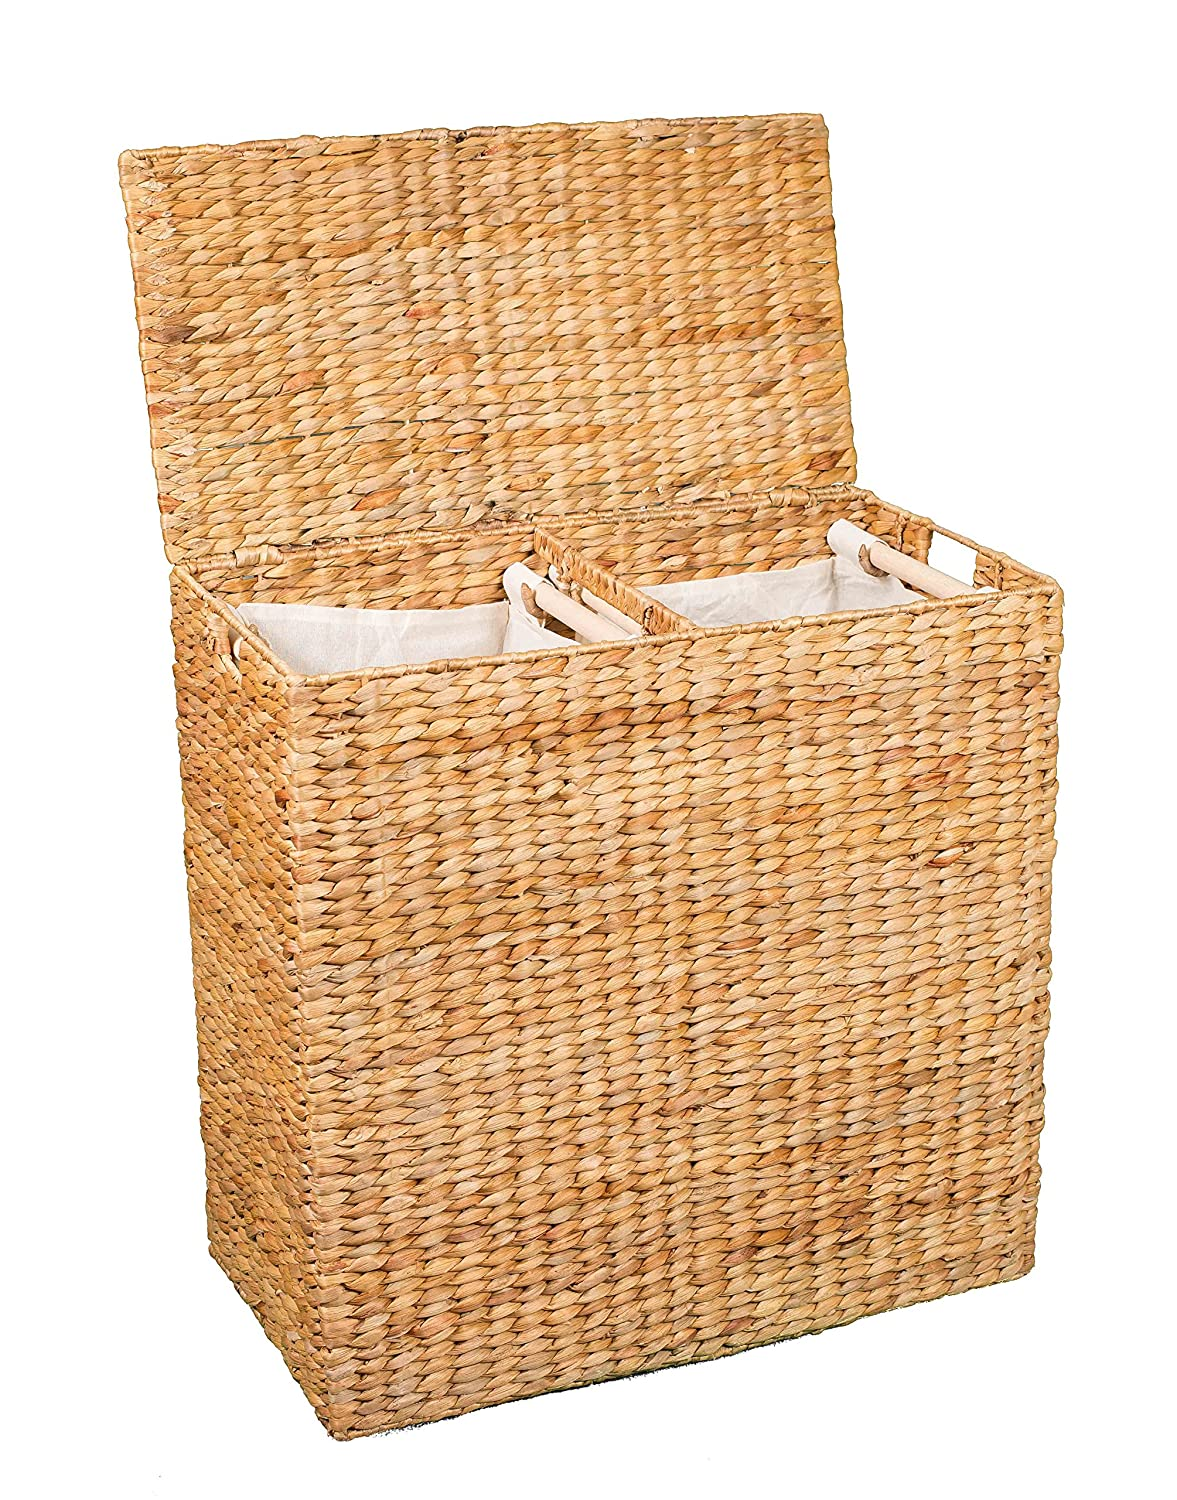 Amazon.com: BirdRock Home Water Hyacinth Laundry Hamper Divided Interior  (Natural) | Eco Friendly | Made Of Hand Woven Hyacinth Fibers | Includes  Two ... Home Design Ideas